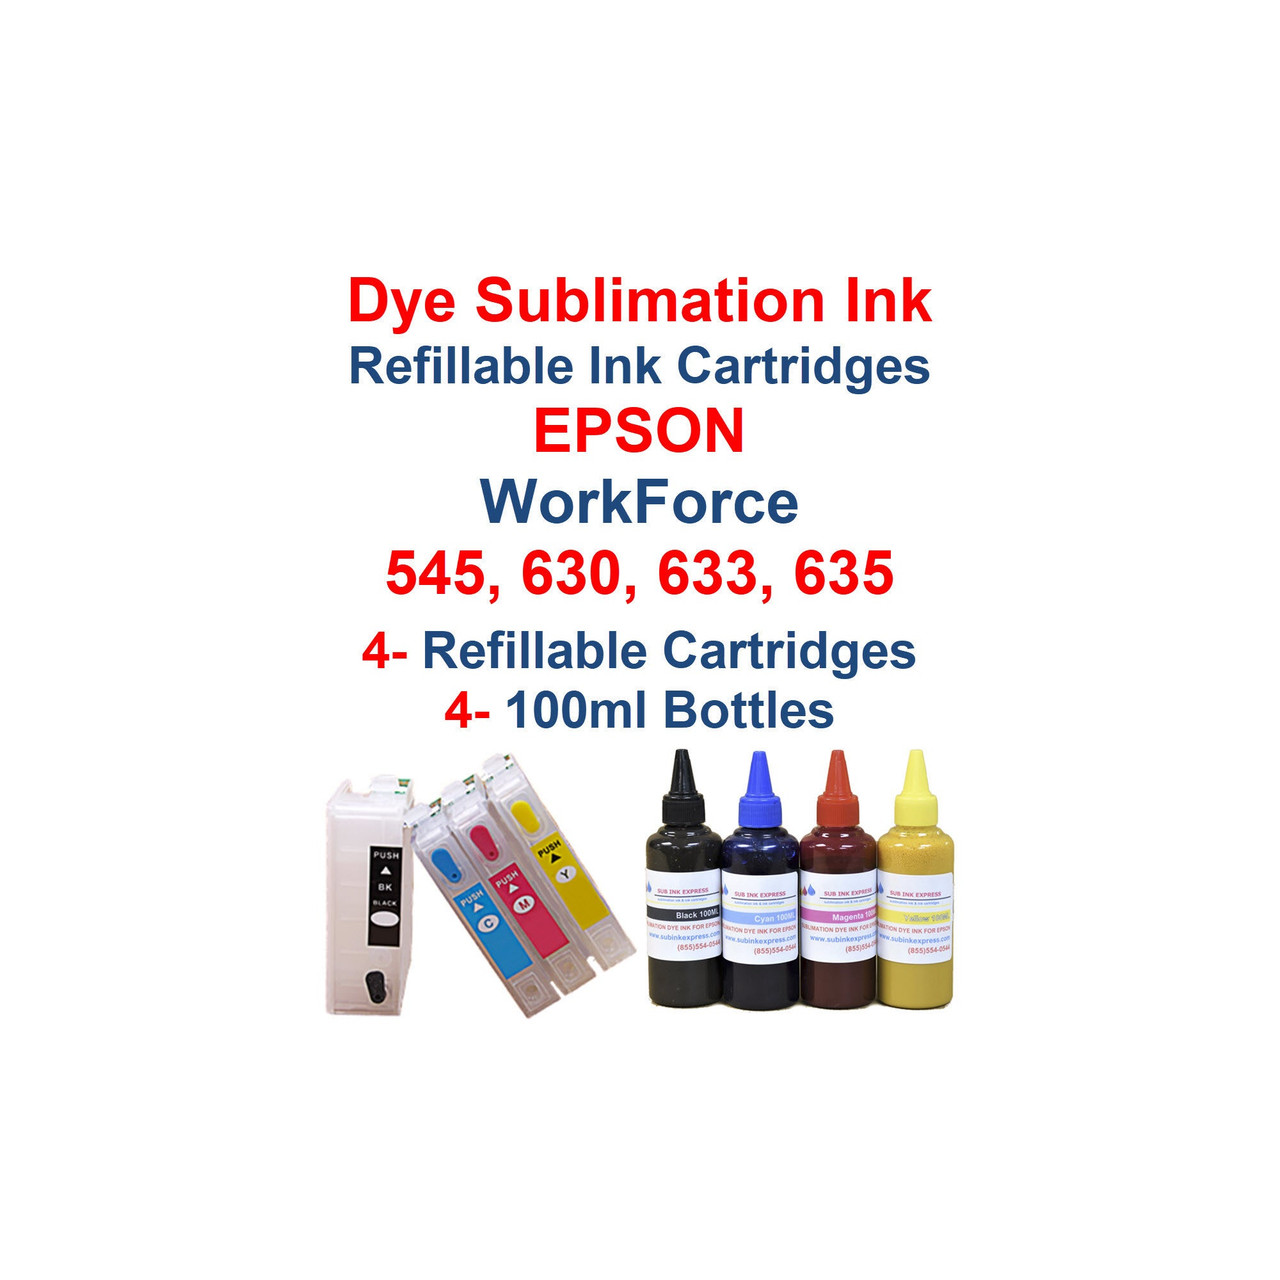 Dye Sublimation ink 100ml bottles , Refillable Ink Cartridges with auto reset chips for Epson WorkForce 545 630 633 635 printers